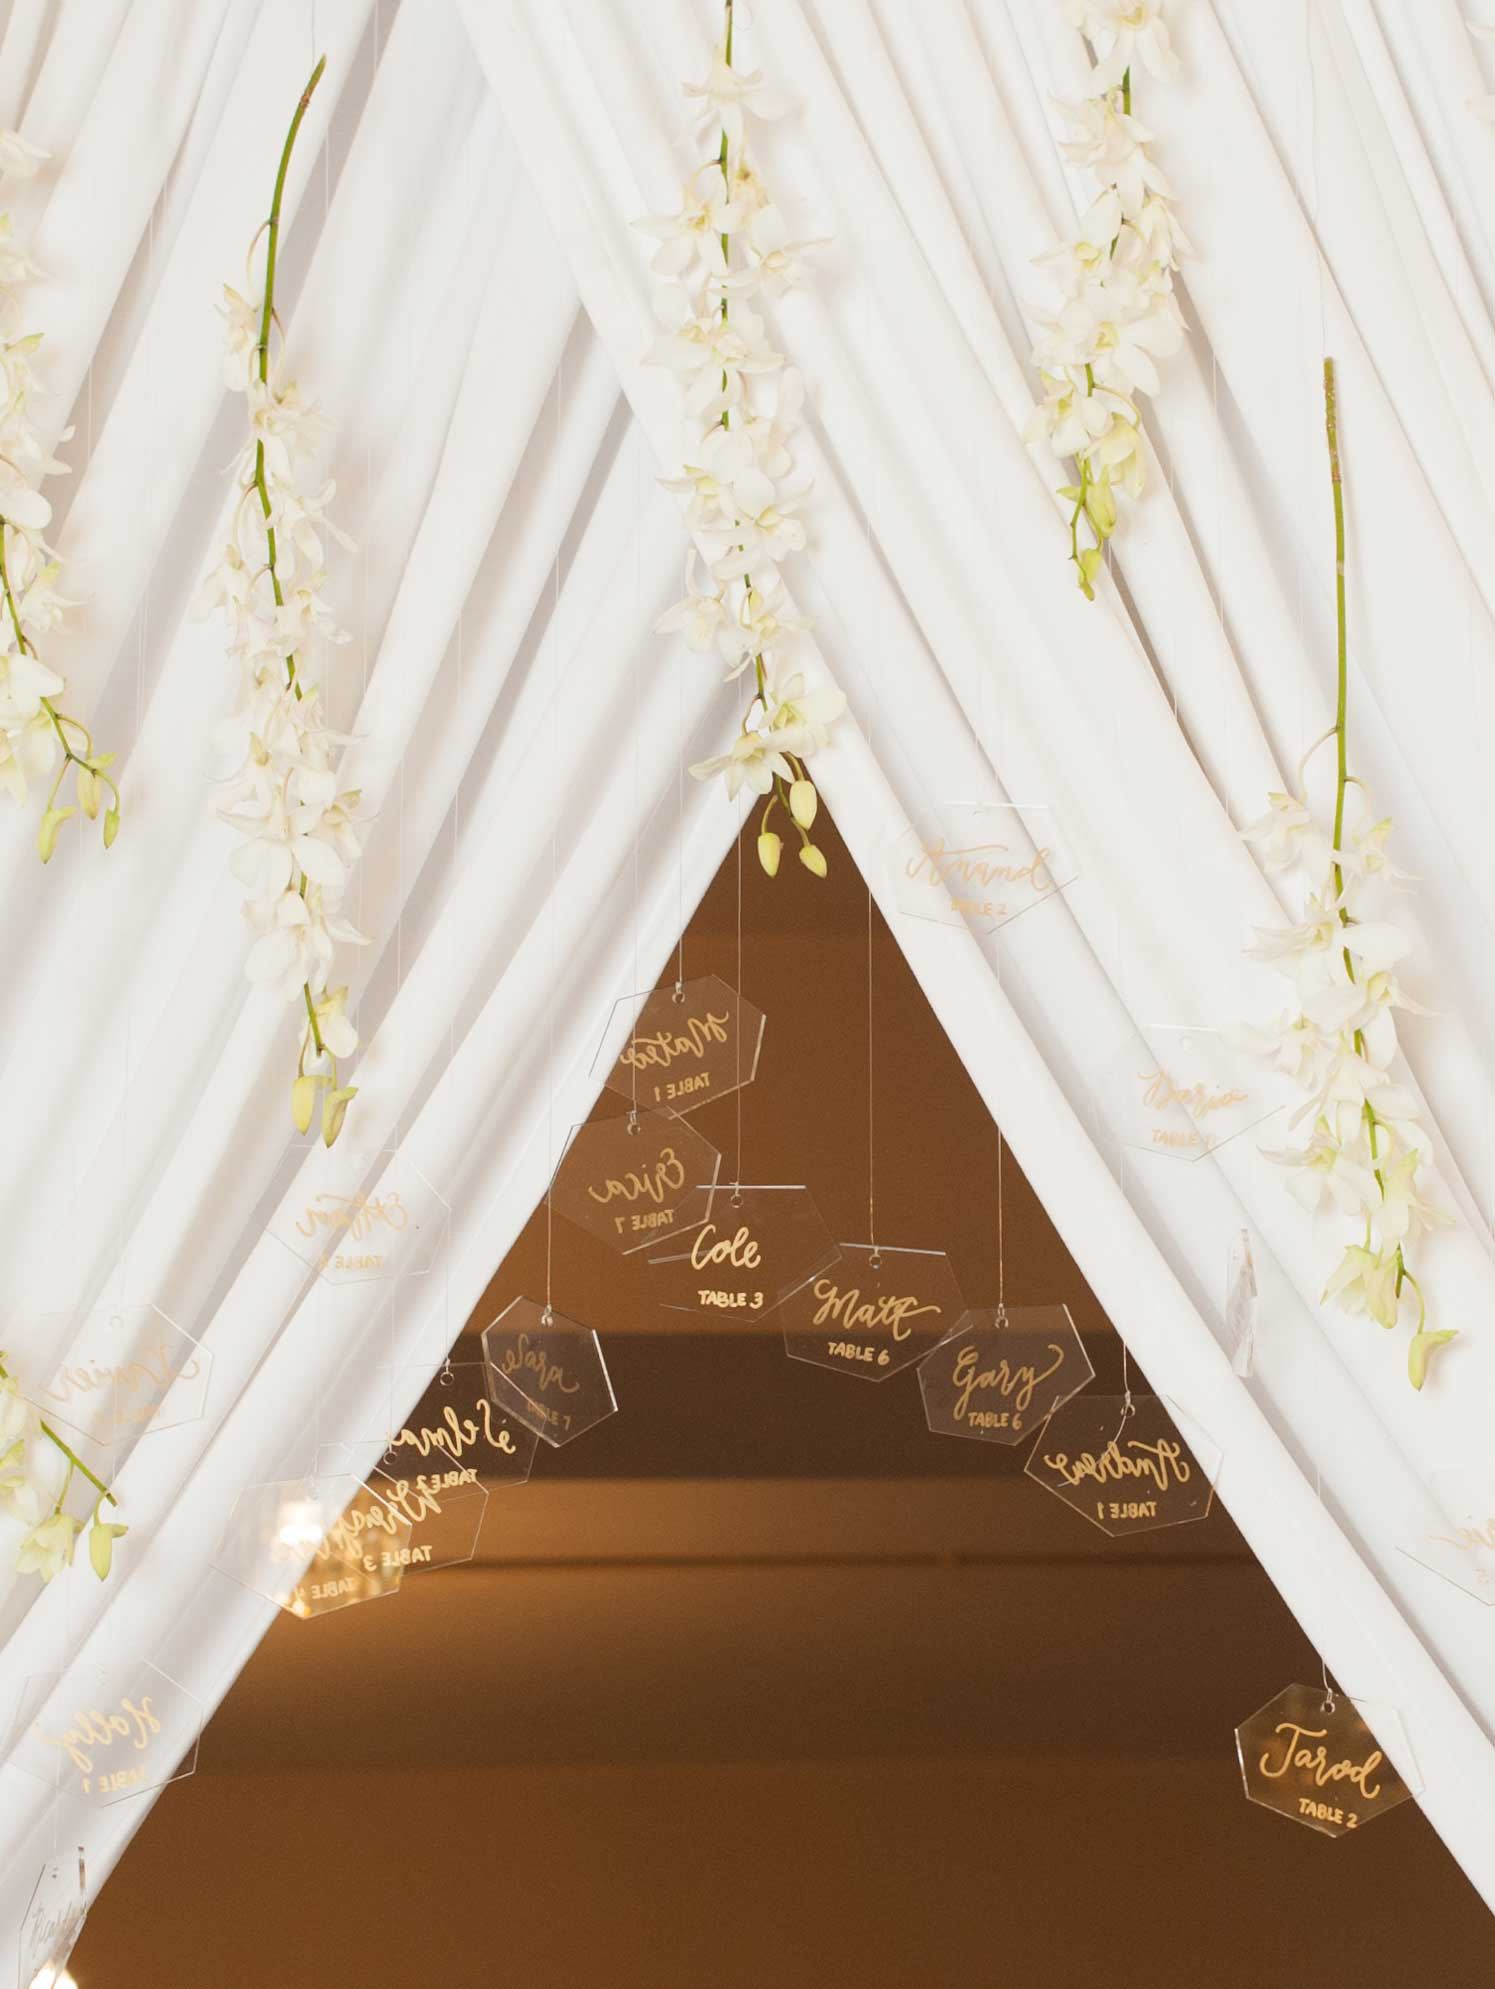 Lucite escort cards hanging from white drape